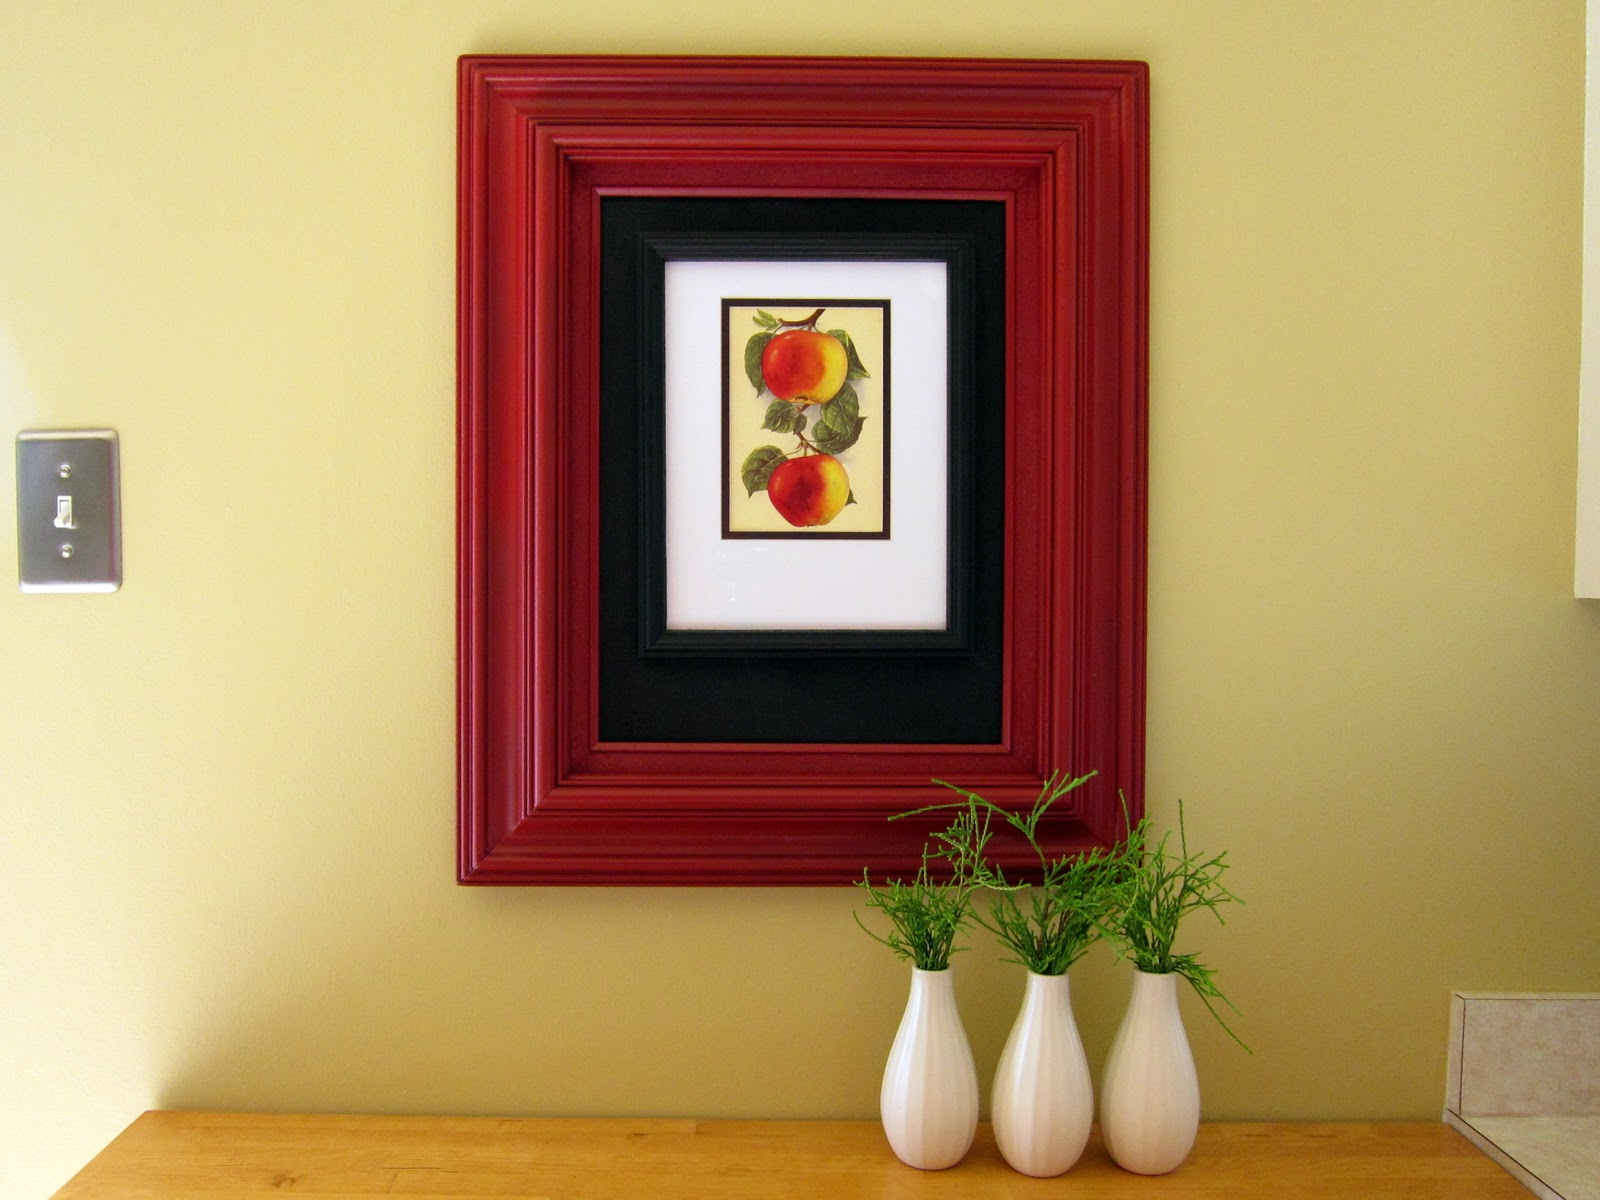 Double the fun: hang a frame within a frame - Rosyscription